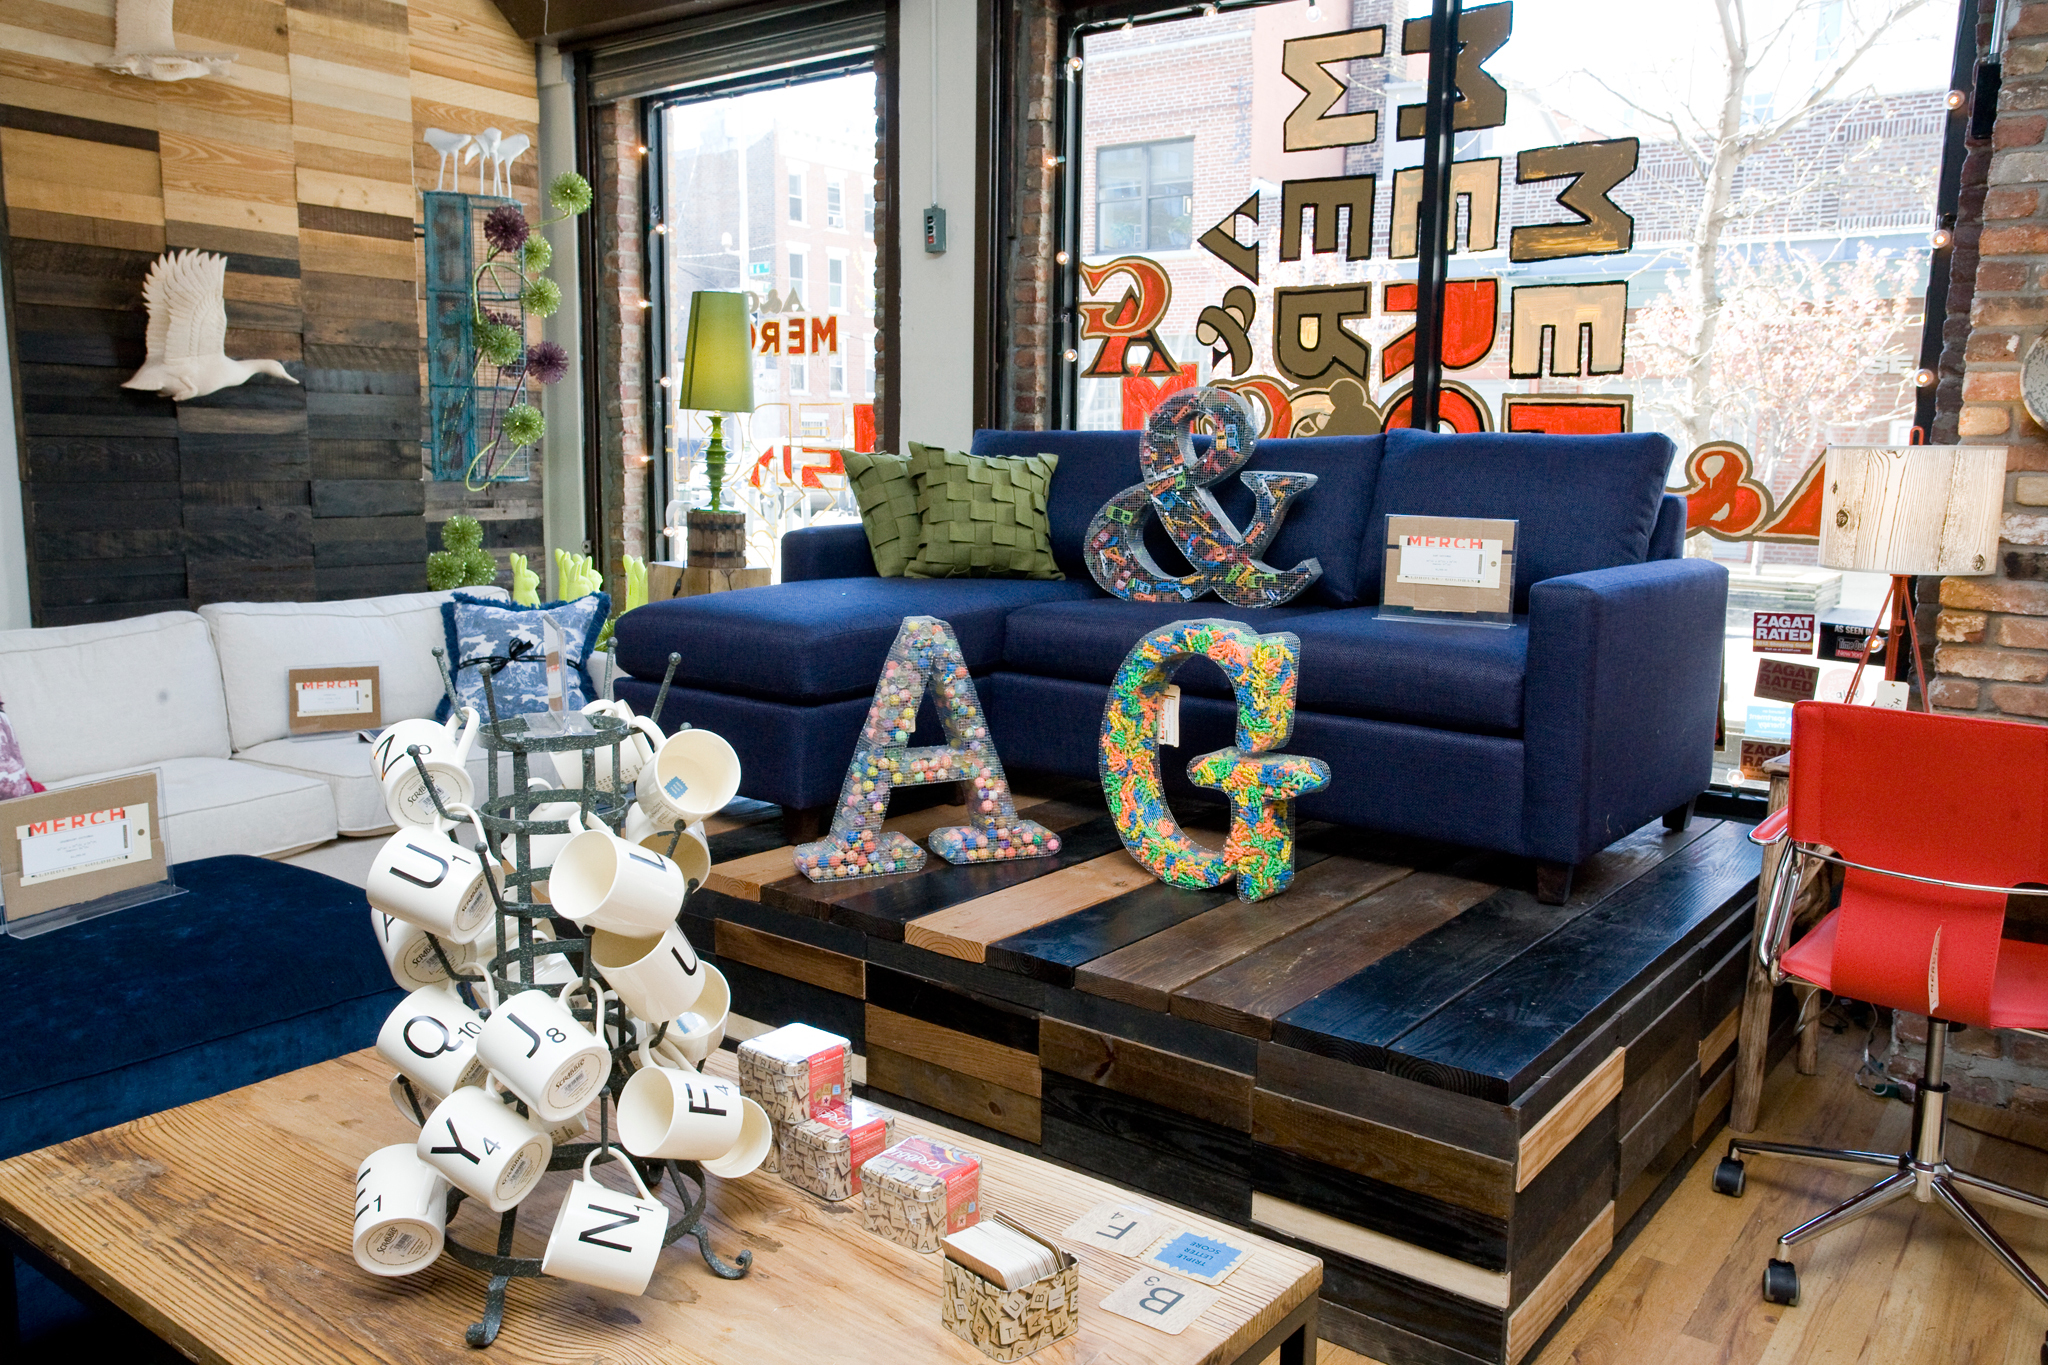 Best shops in nyc women 39 s fashion men 39 s fashion and more - Home furnishing stores ...